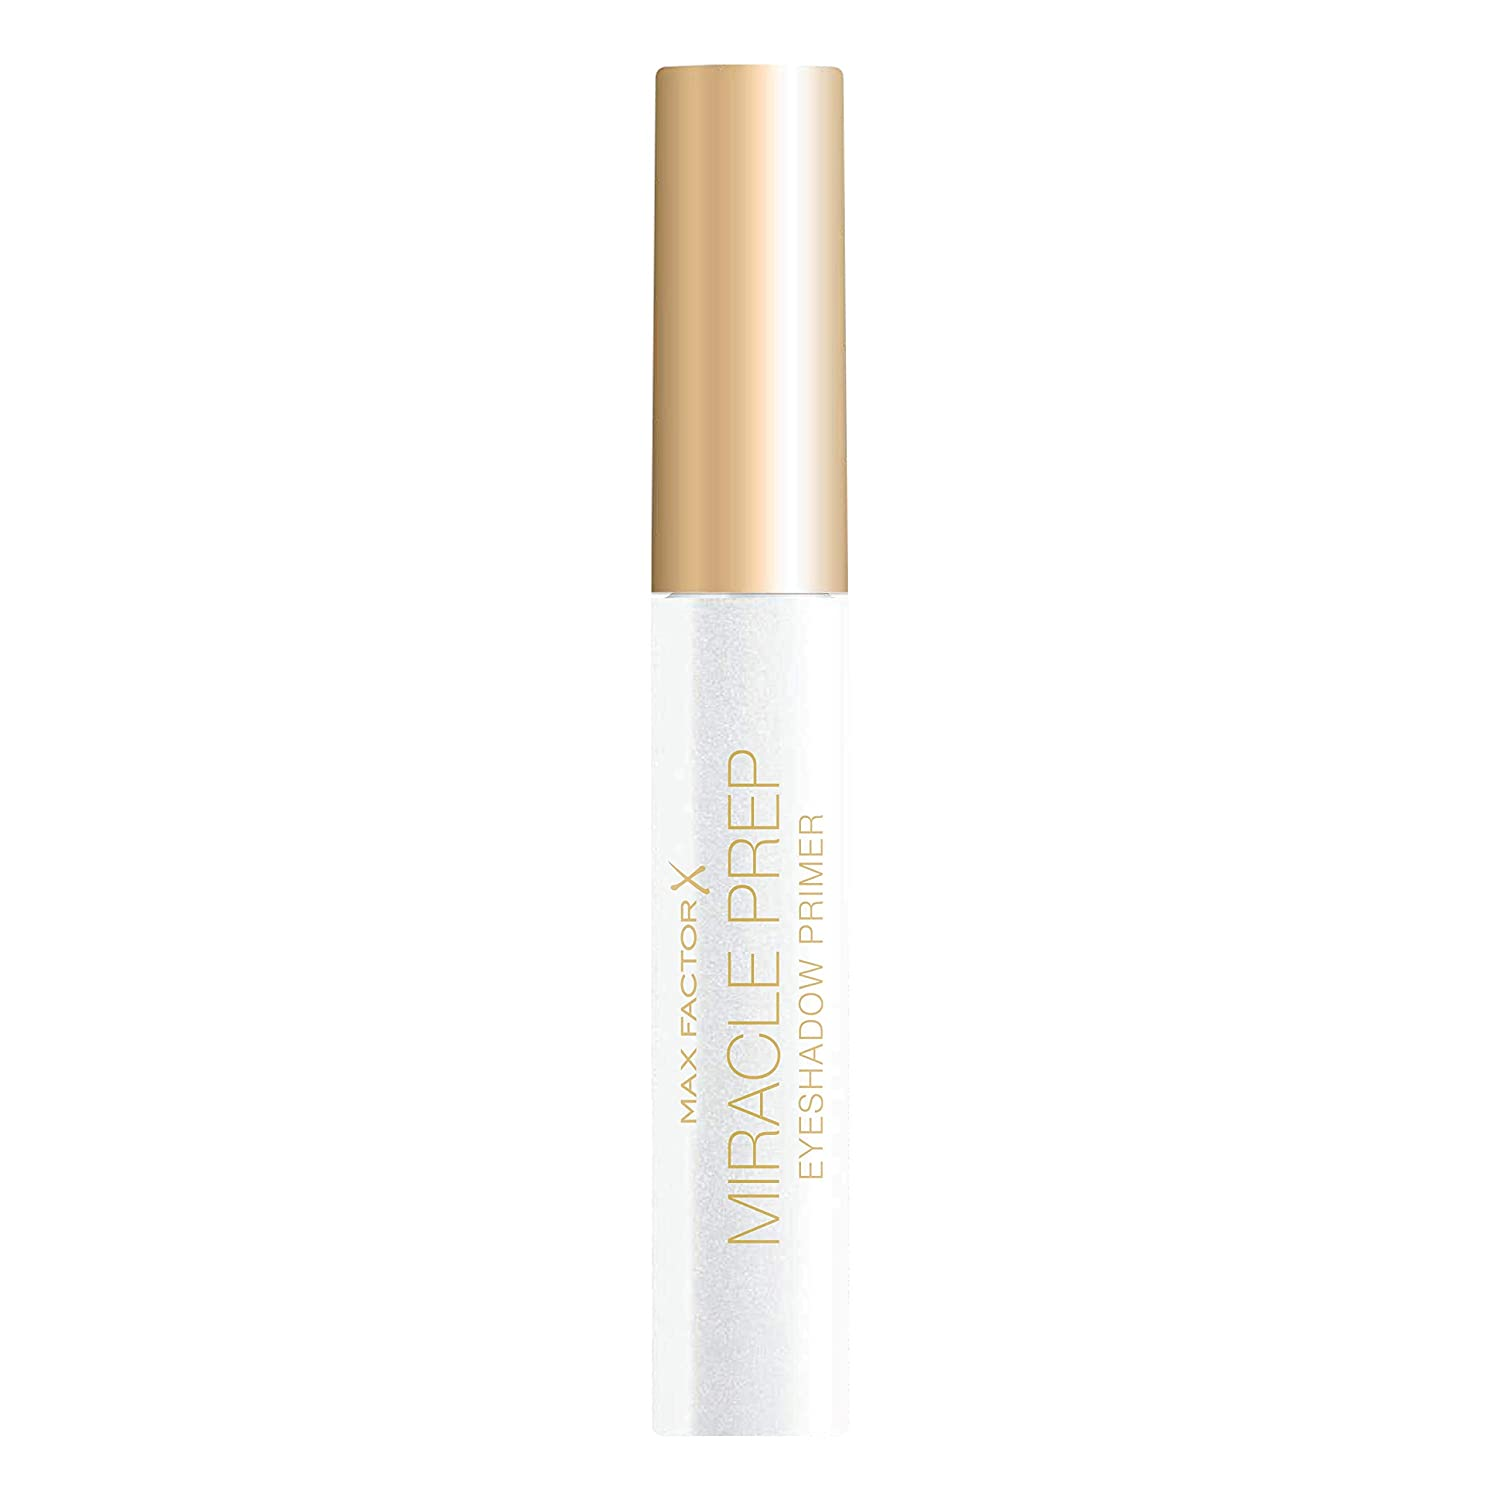 Max Factor Miracle Prep Eye Shadow Primer Coty 33250063000